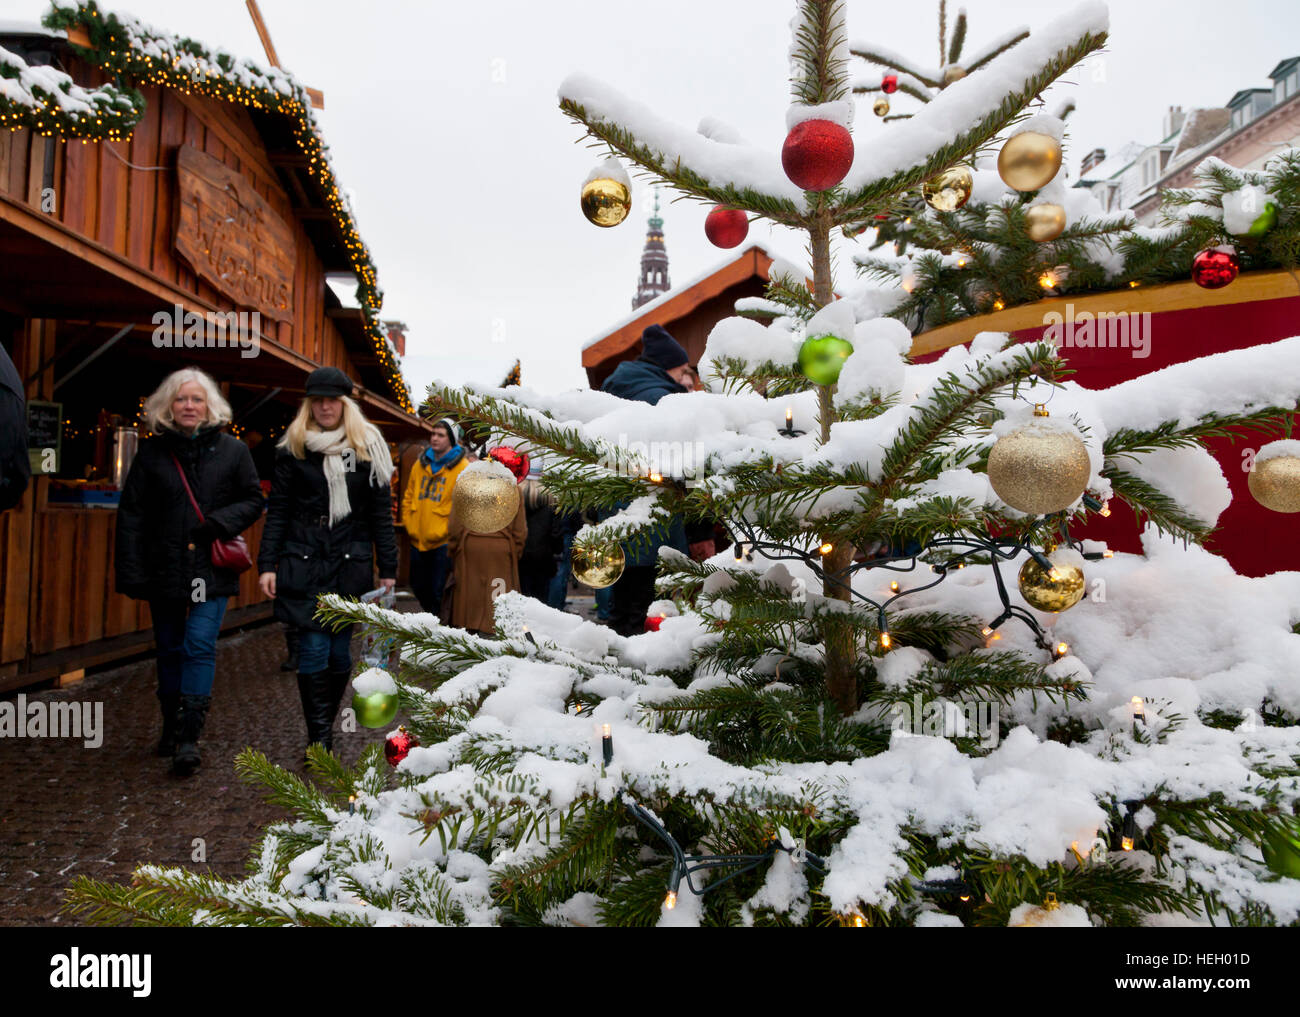 Decorated Christmas tree with snow at Christmas market on Højbro Plads, Hoejbro Square, on Strøget, Stroeget, - Stock Image